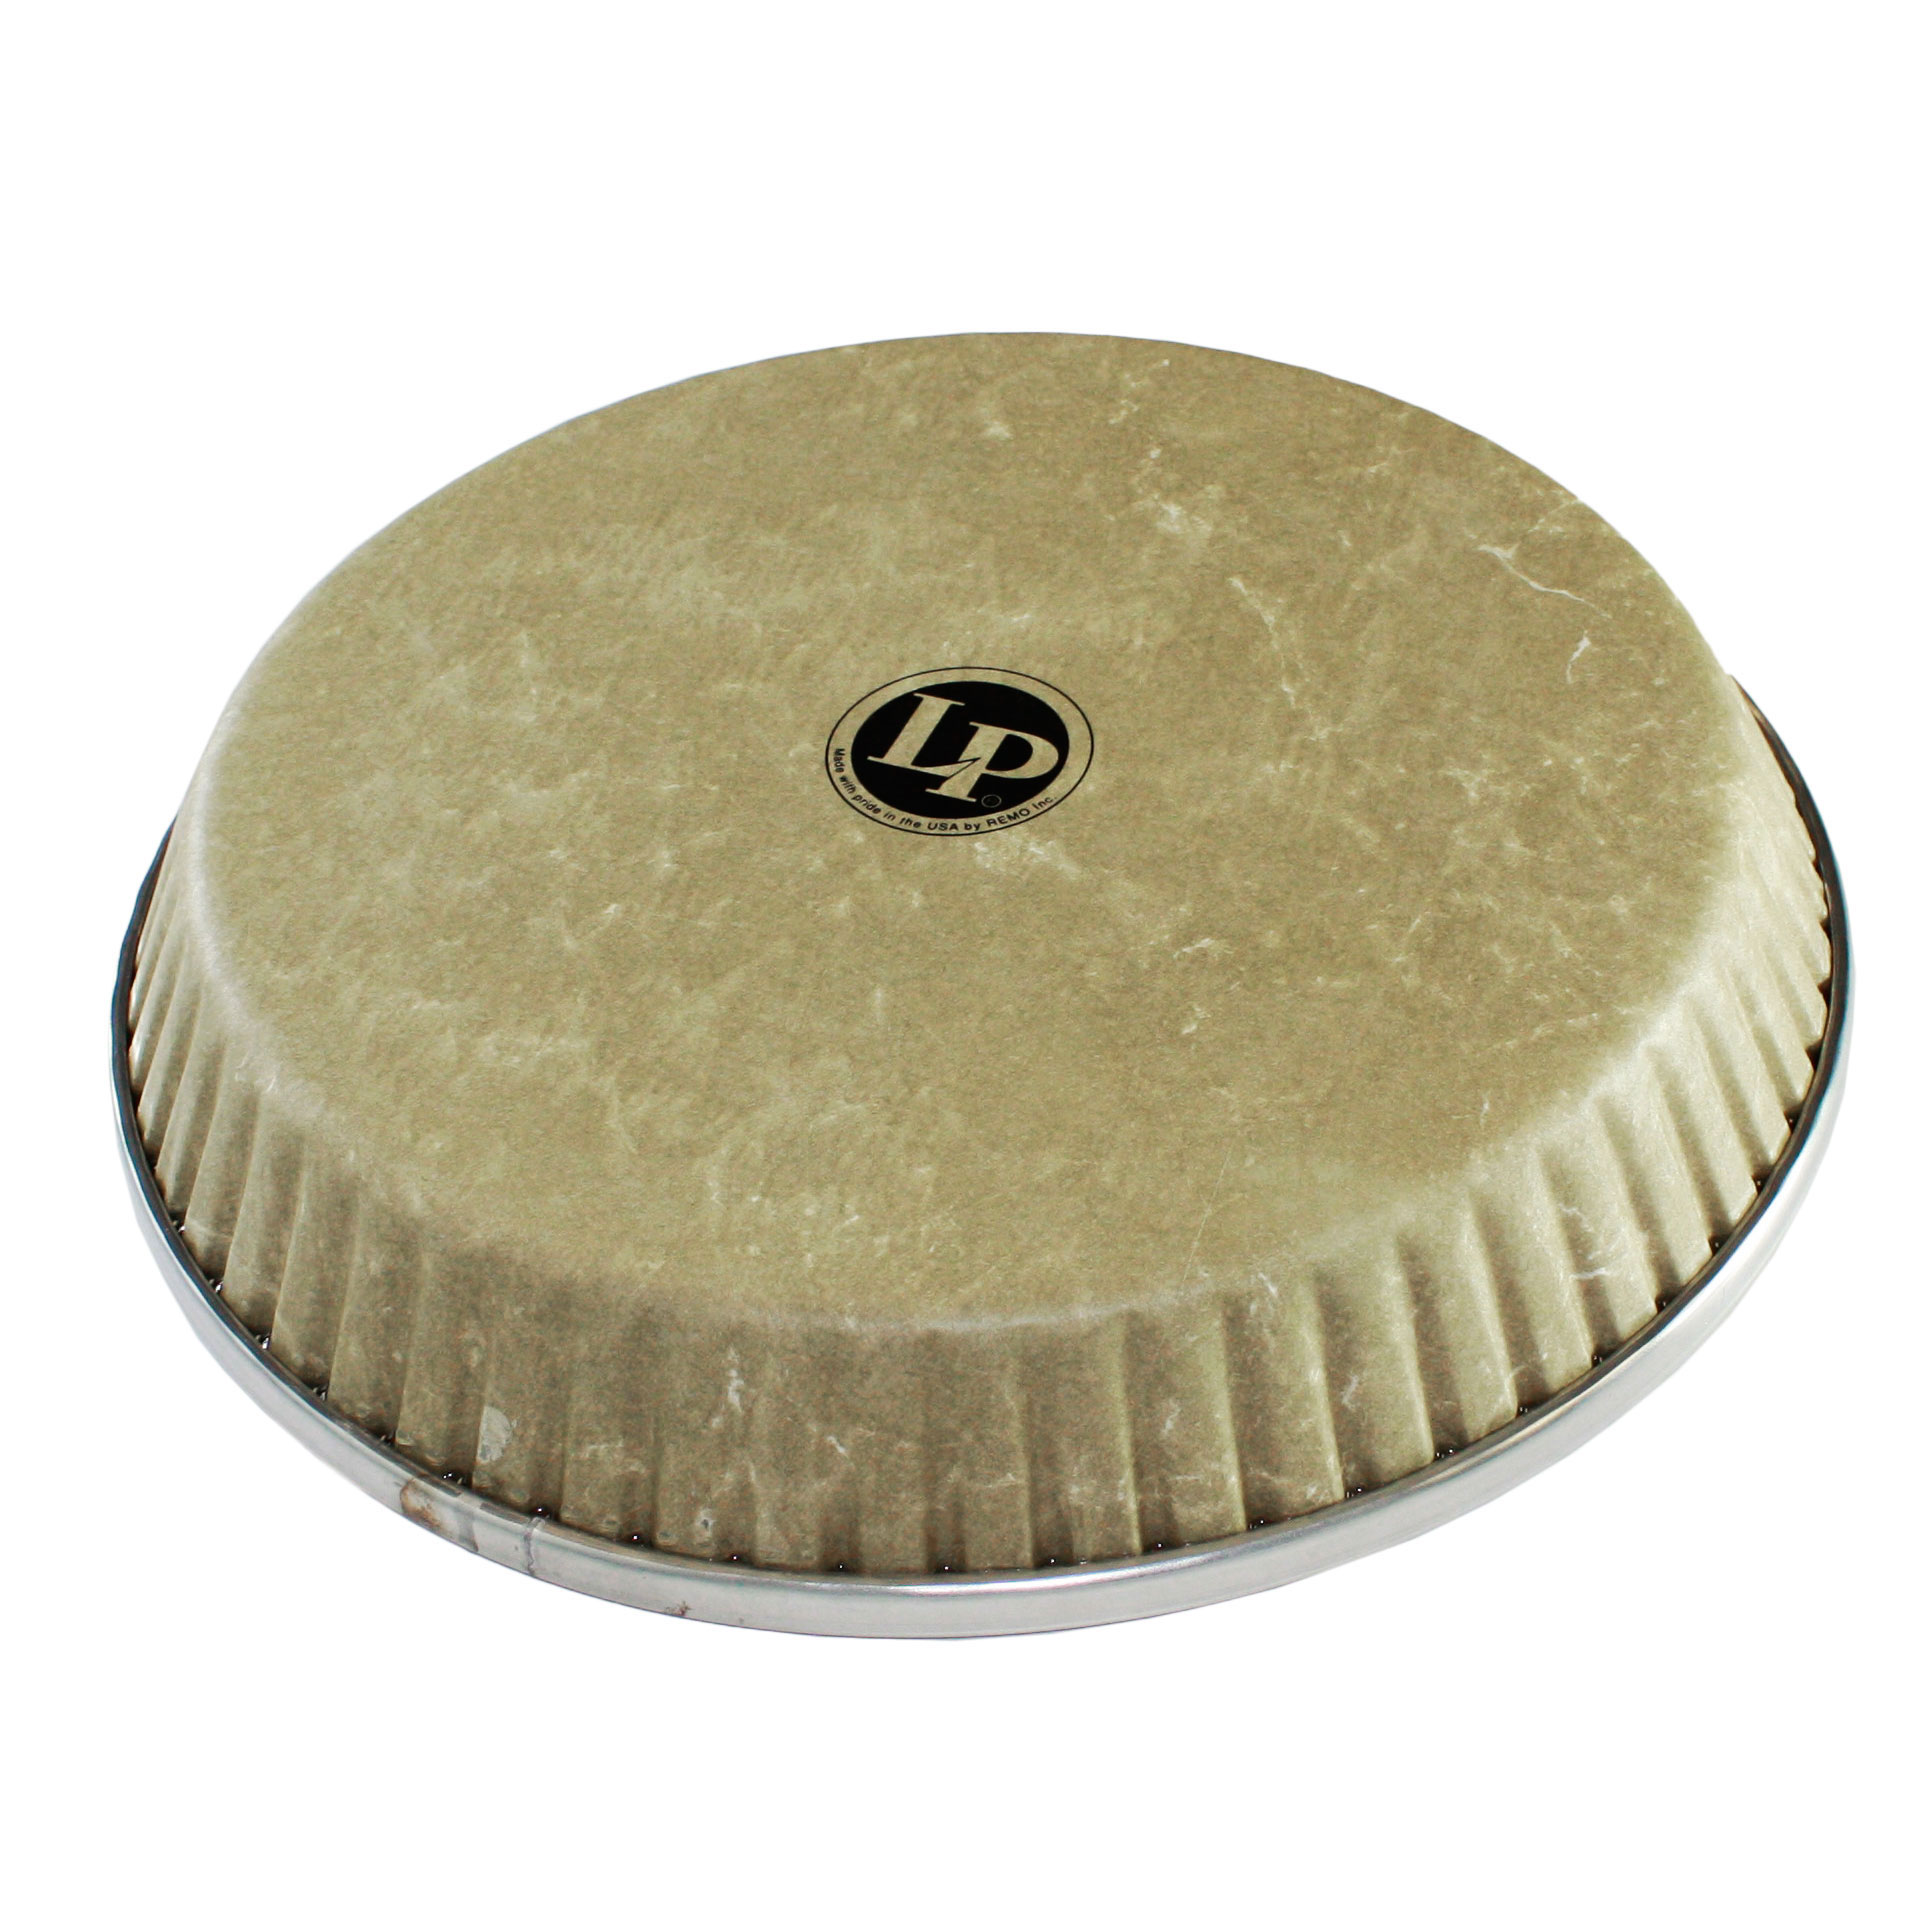 "LP 11.75"" Fiberskyn 3 Synthetic Conga Drum Head"